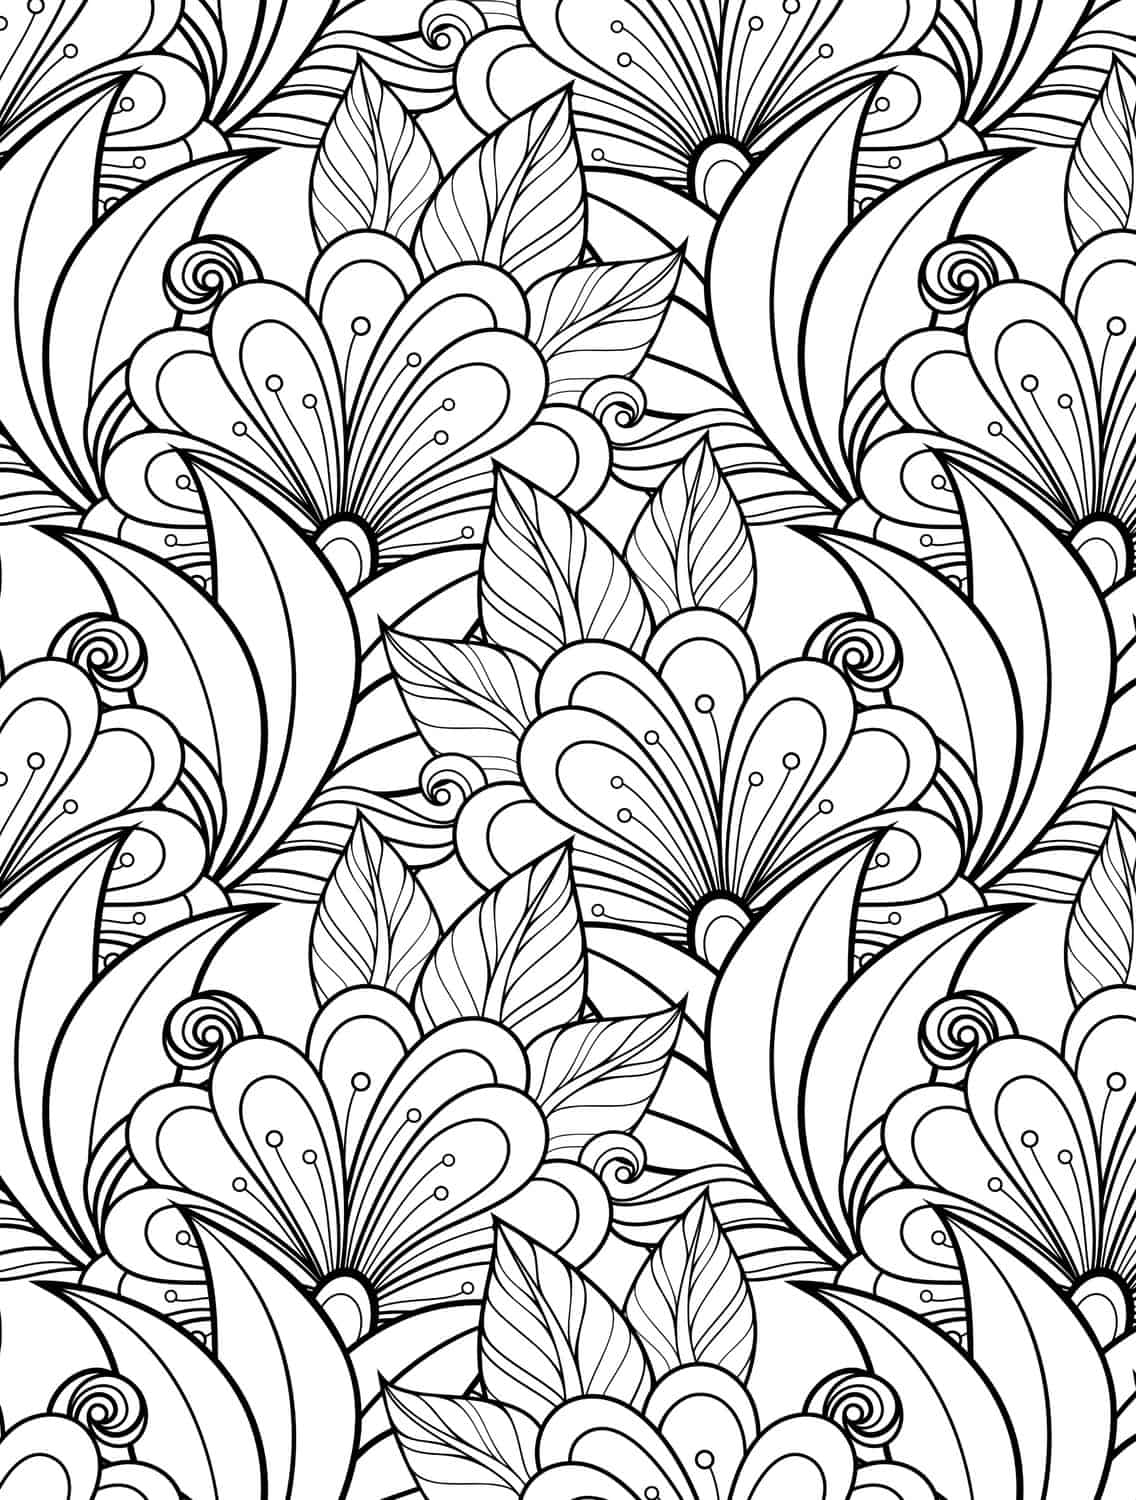 24 more free printable adult coloring pages page 7 of 25 for Free printable coloring pages for adults and kids